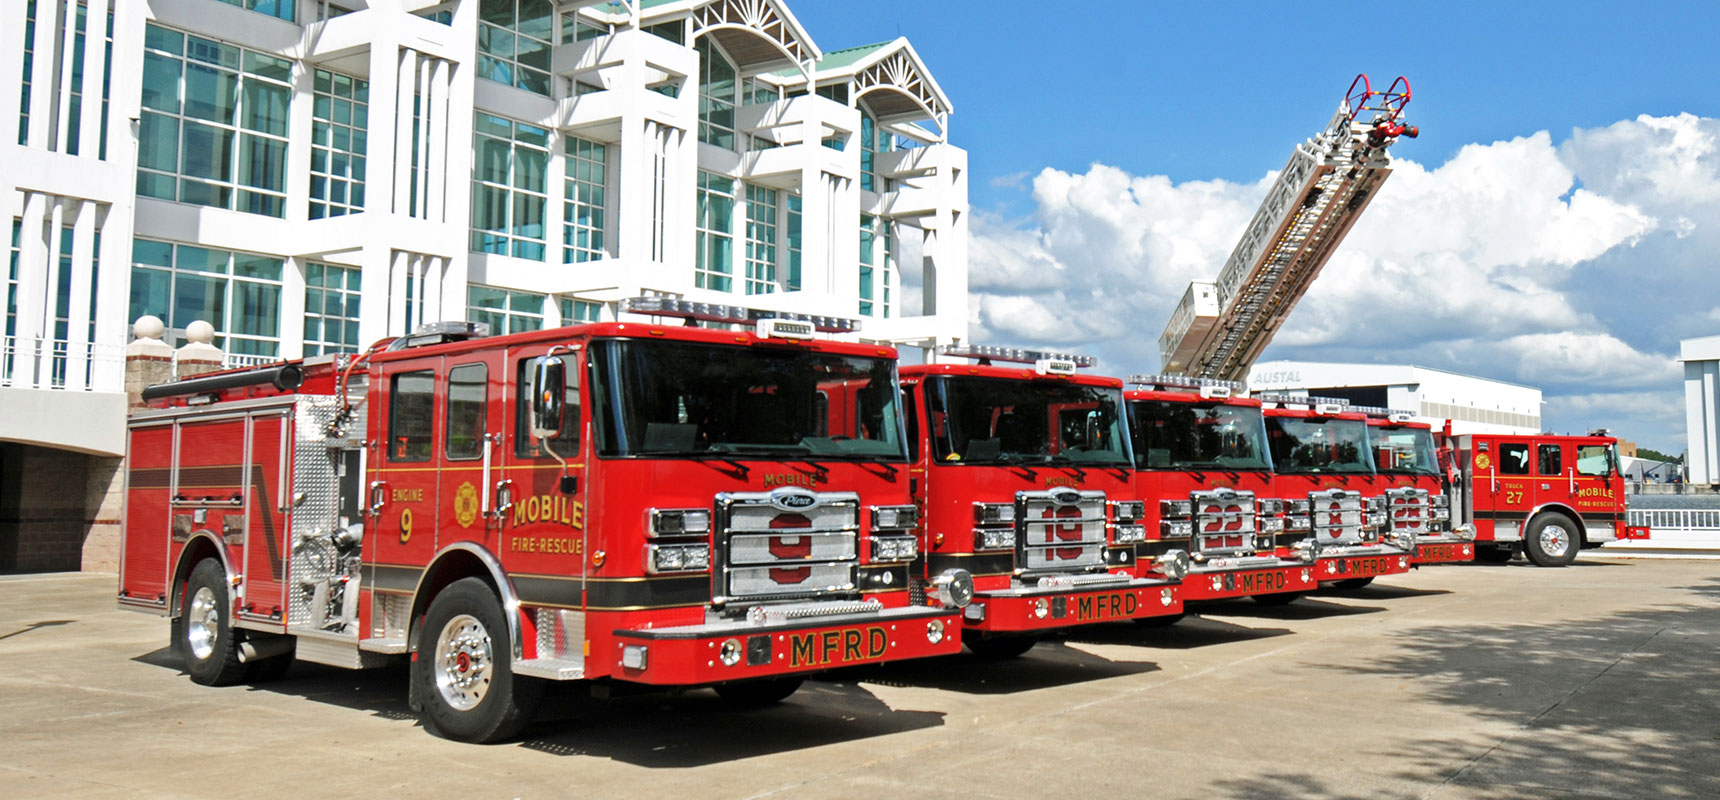 Pierce-Delivers-Five-Enforcer-Pumpers-and-an-Ascendant-107-Aerial-Ladder-to-the-City-of-Mobile-Alabama---Header